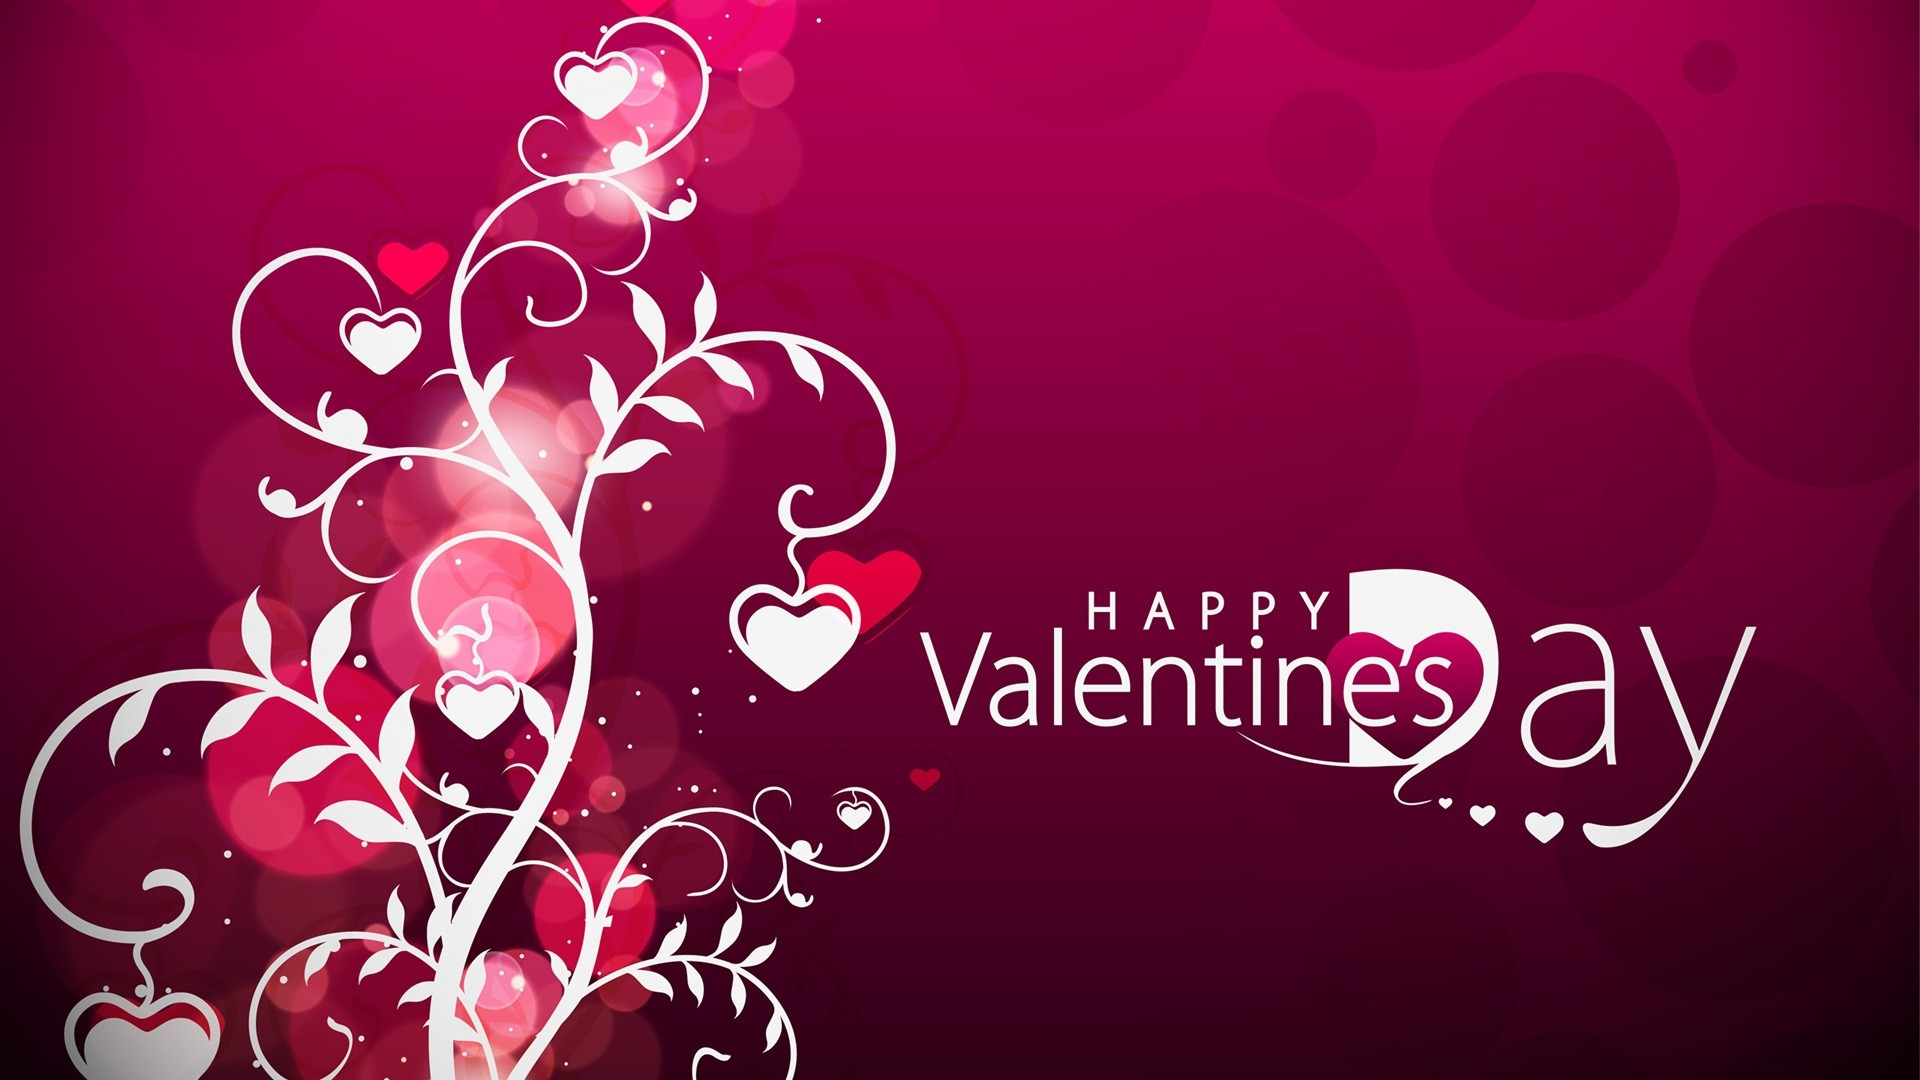 Valentines Day Wallpapers and Backgrounds 1920x1080